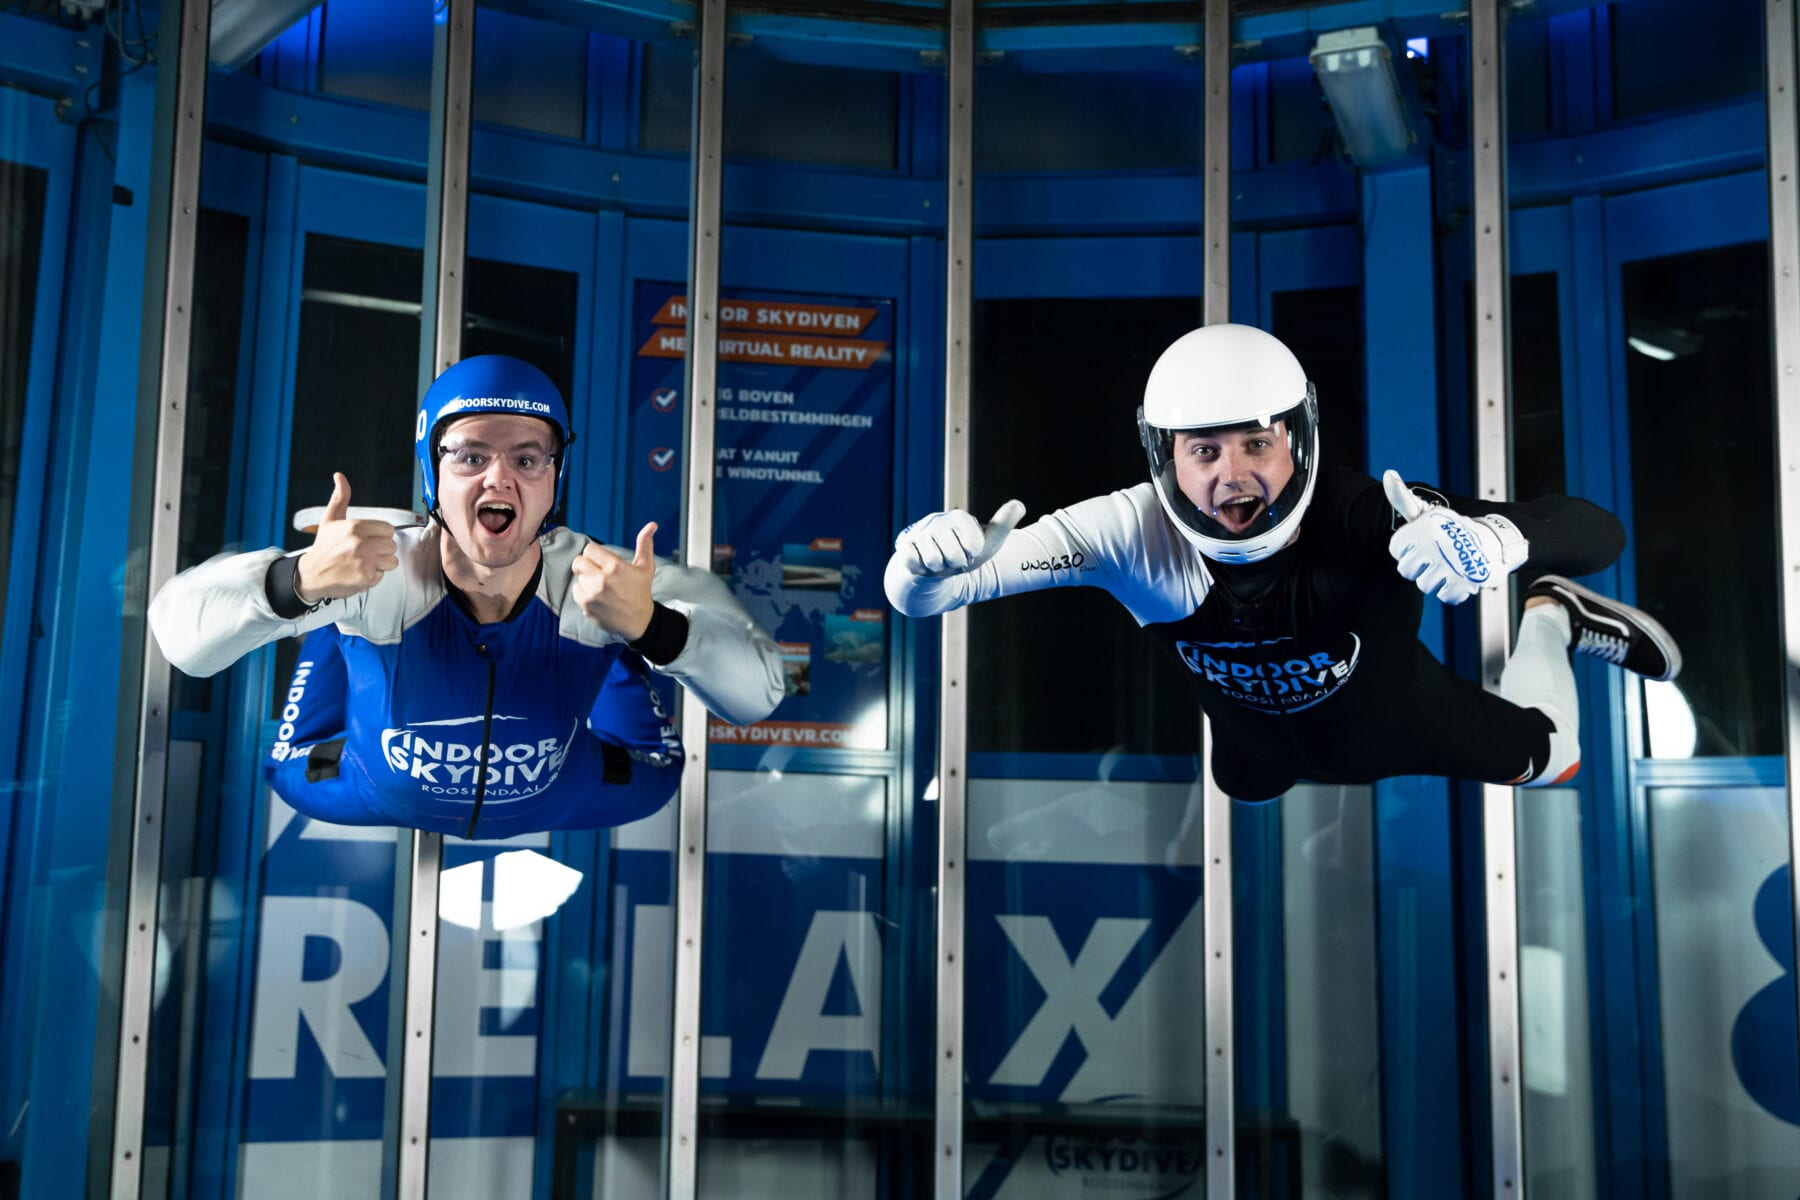 Een dag van een Indoor Skydive instructeur!